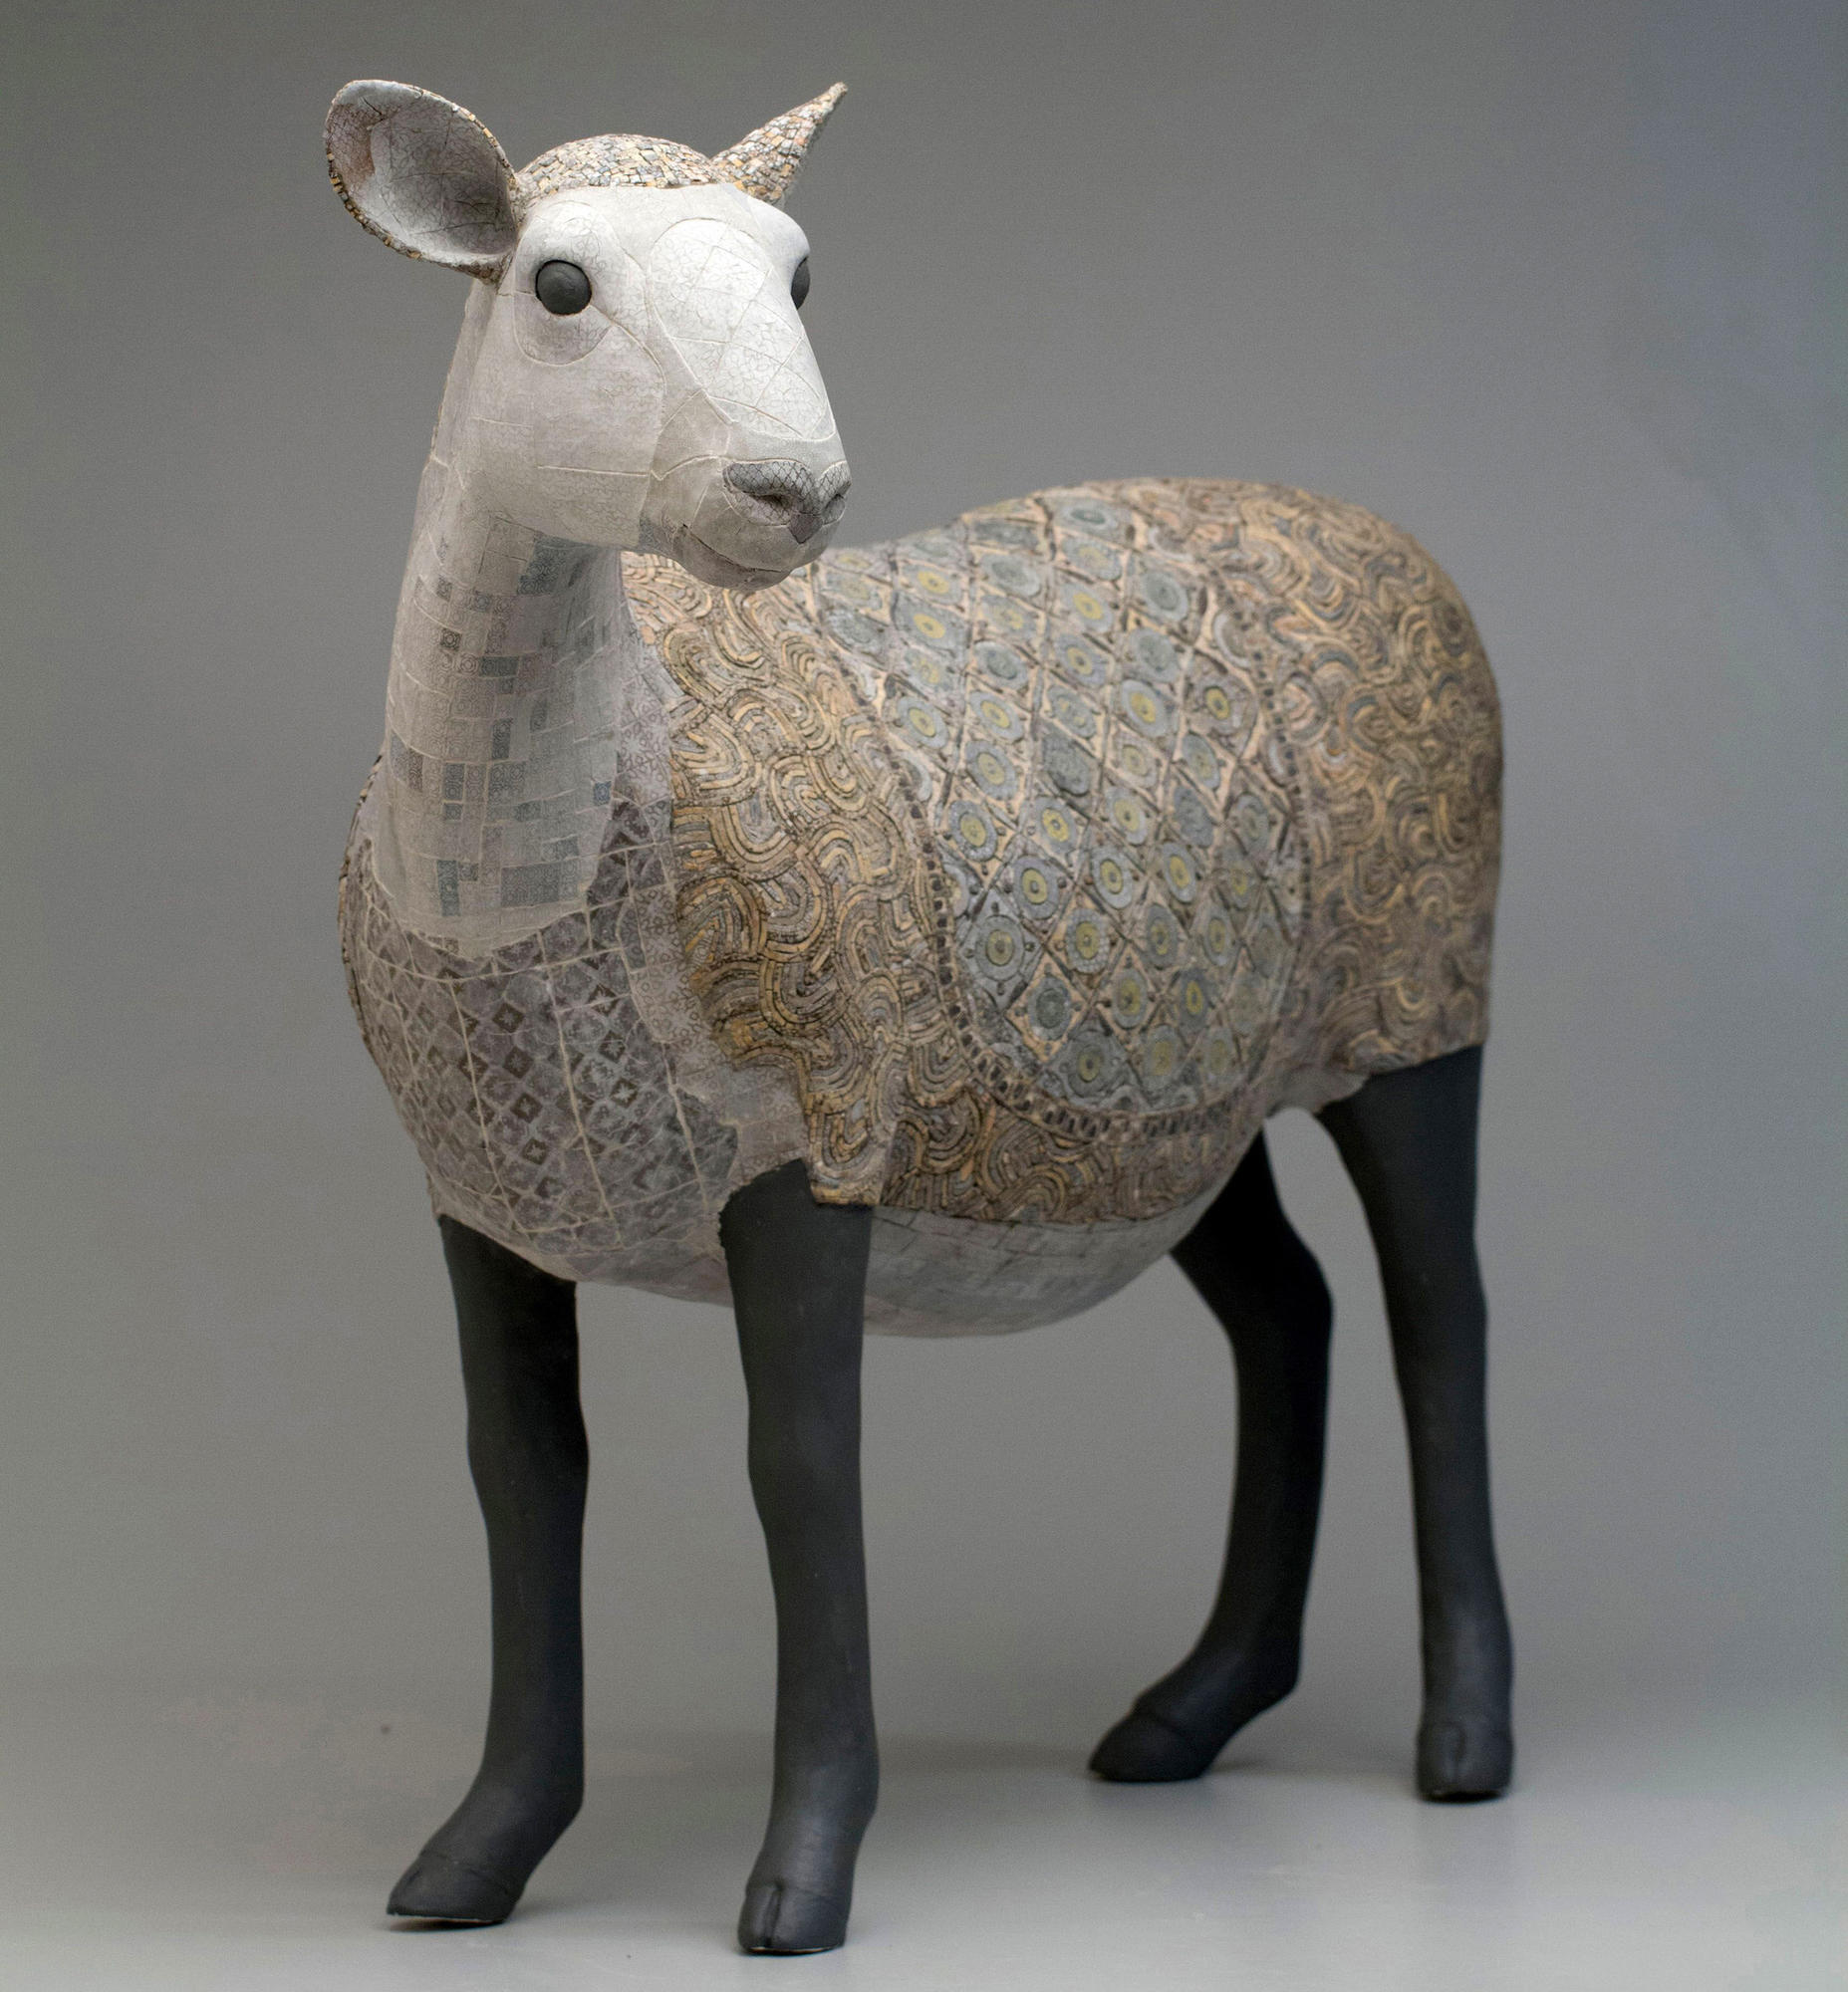 sculpture of a sheep